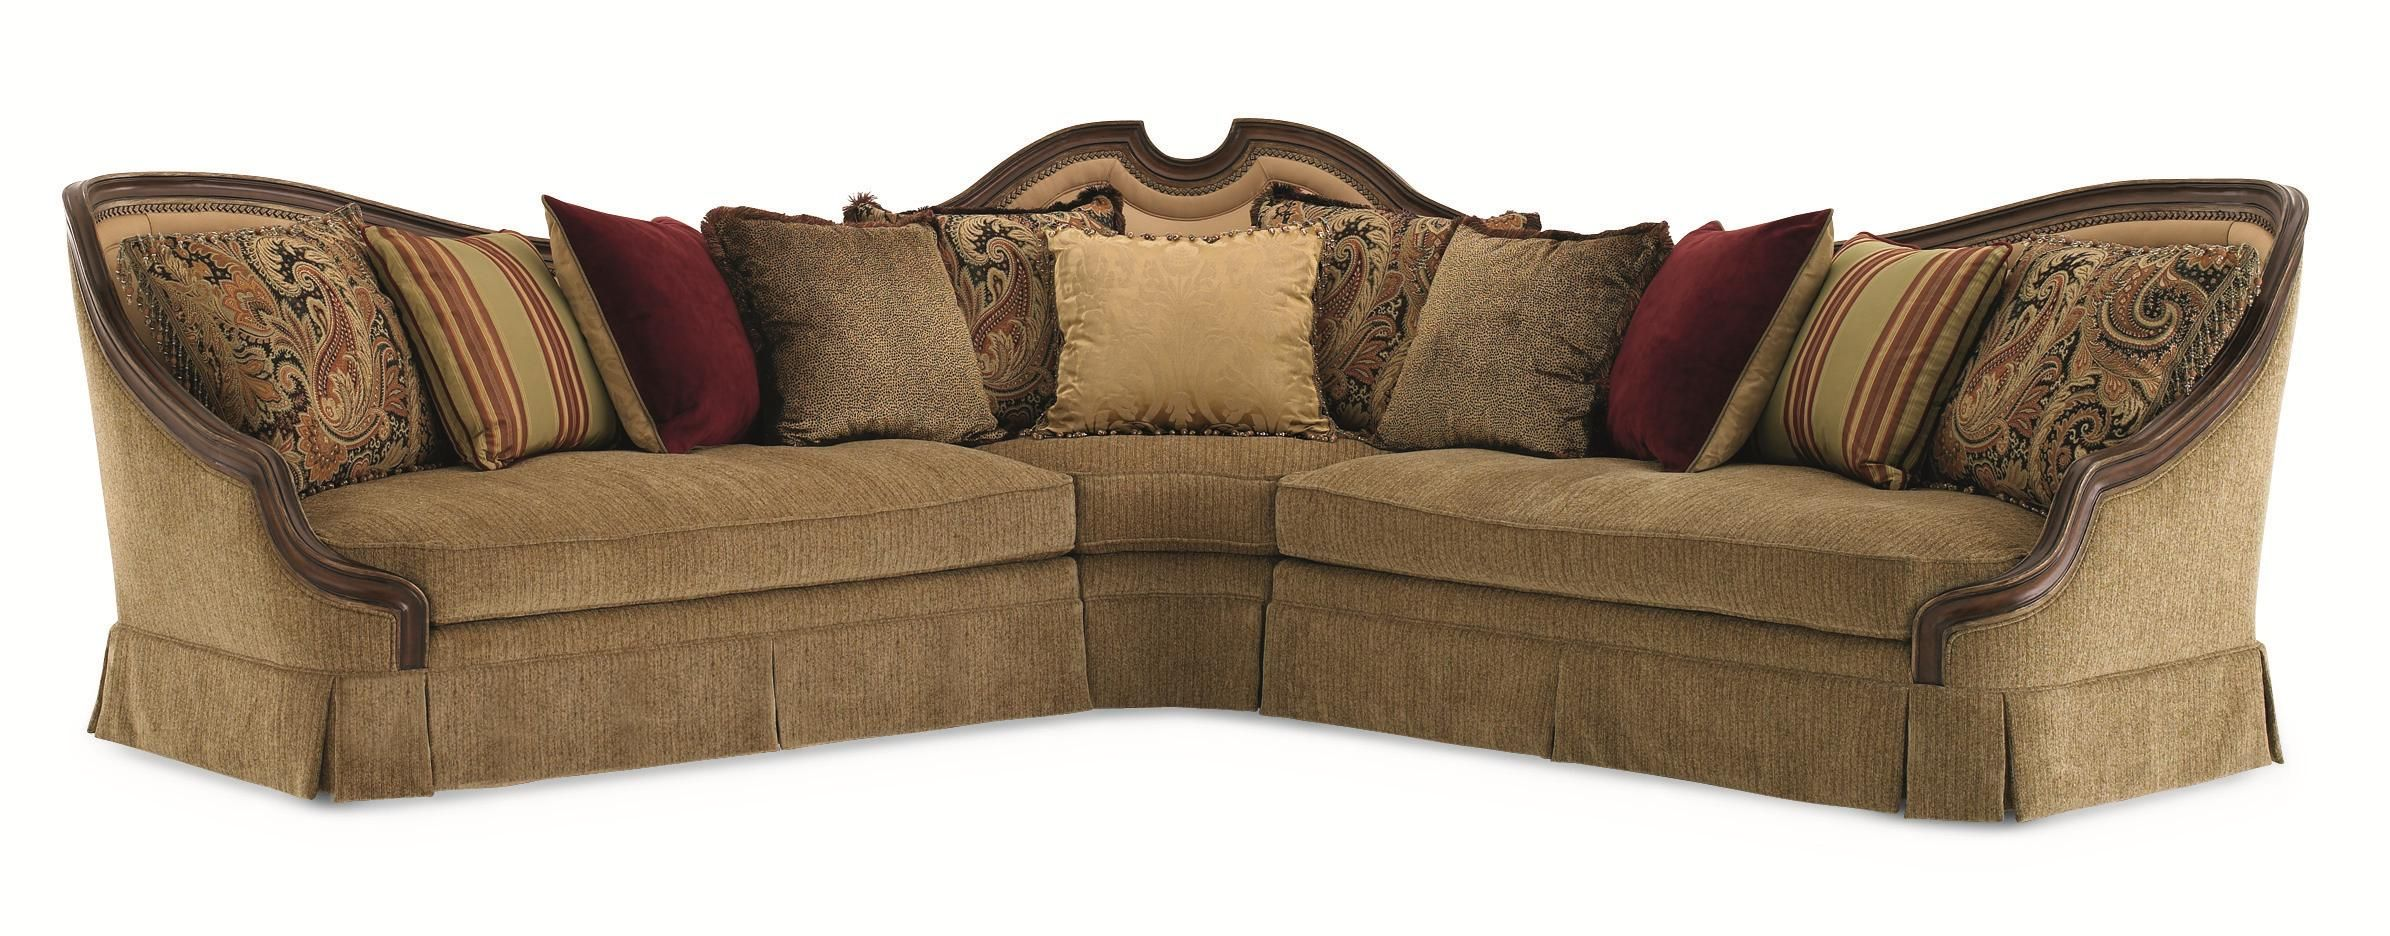 schnadig sofa 9090 brown leather with blue cushions sofas living furniture dining bedroom upholstery